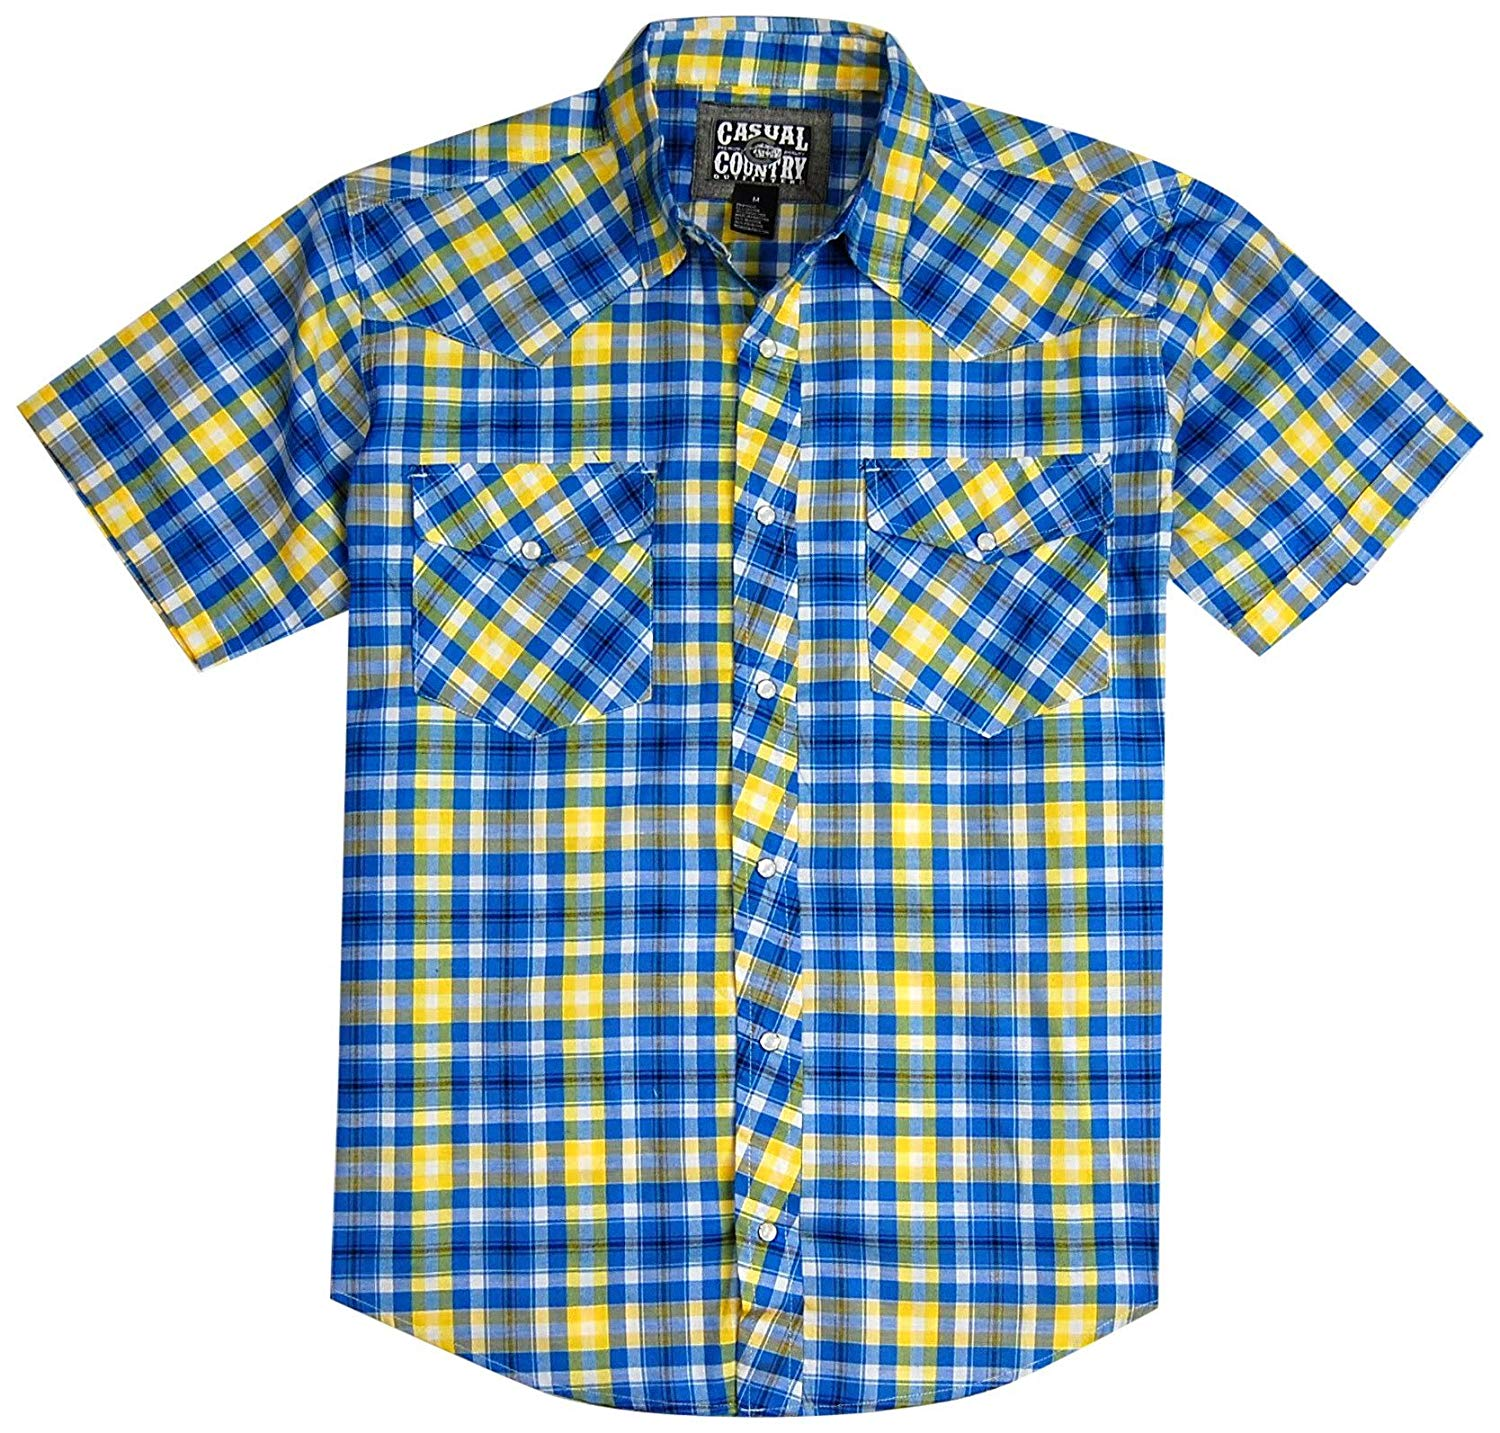 Men's Classic Plaid Short Sleeve Casual Western Shirt; Pearl Snap Front